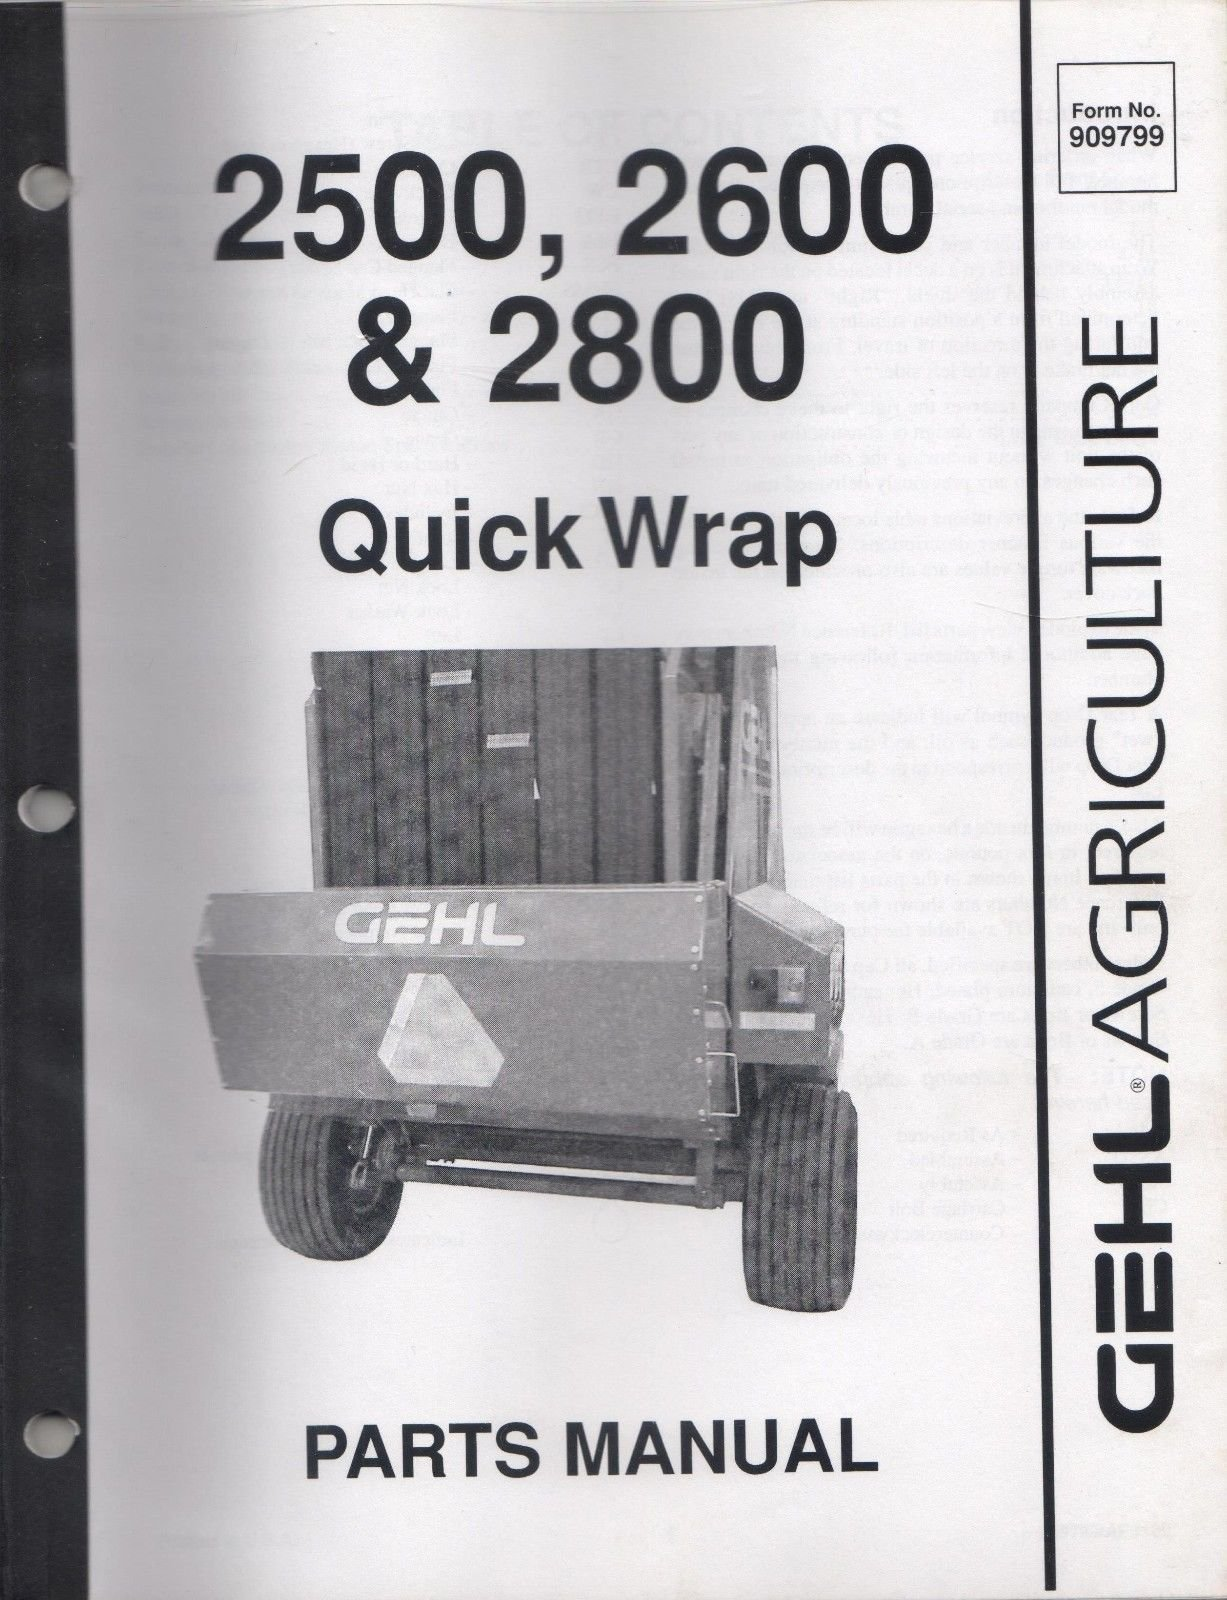 2002 GEHL AGRICULTURE 2500, 2600, 2800 QUICK WRAP p/n 909799 PARTS MANUAL  (259): Gehl: Amazon.com: Books